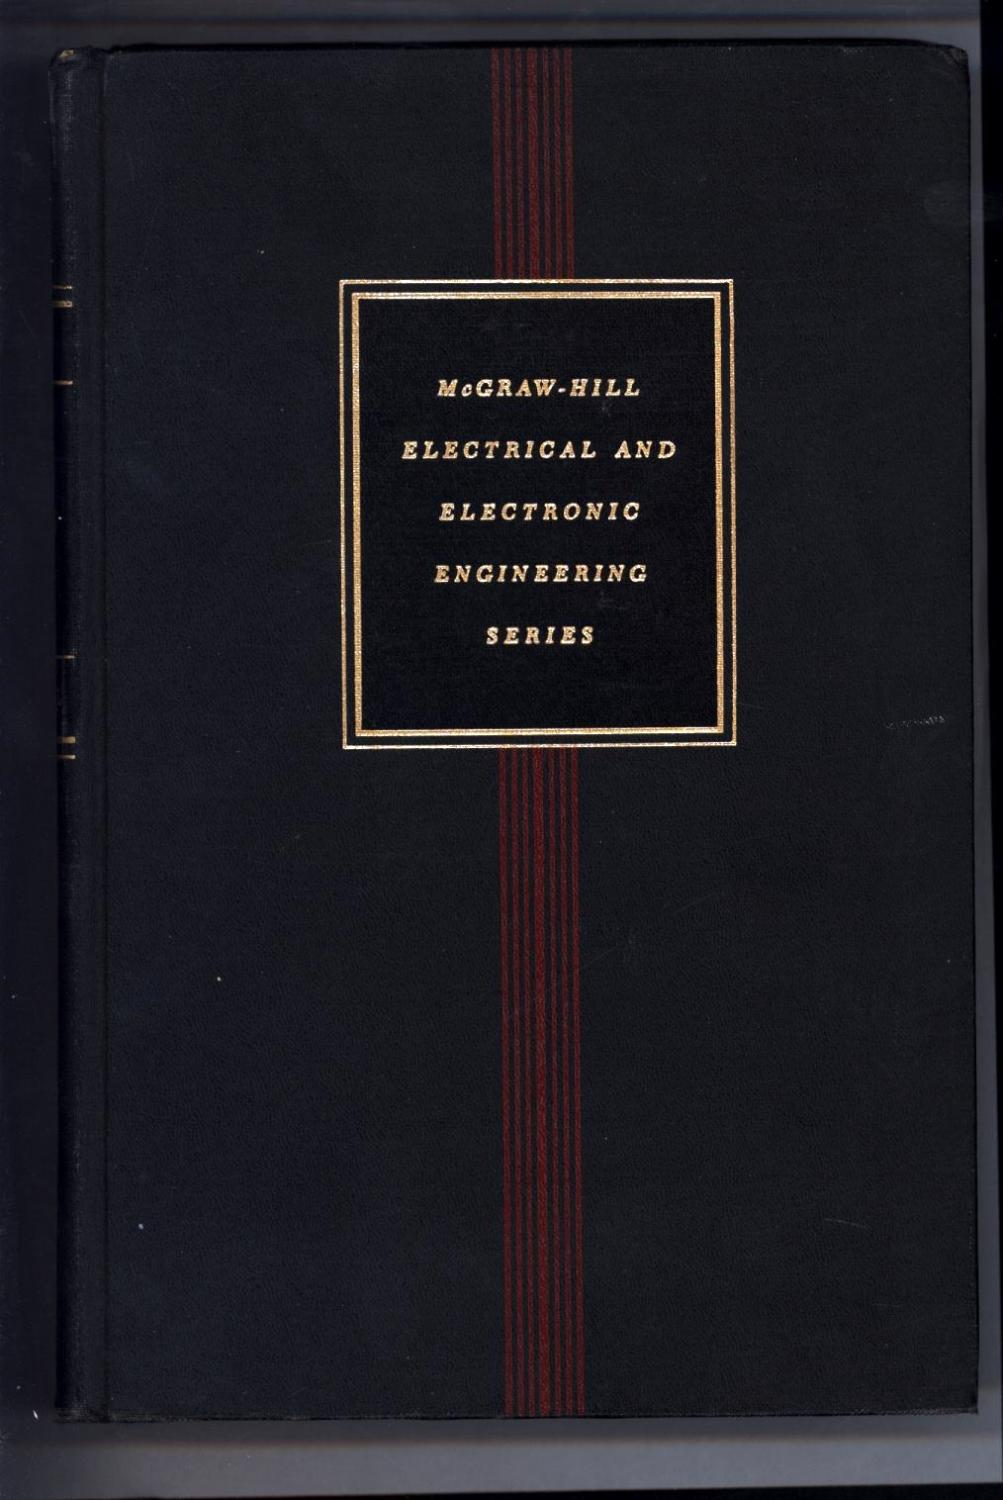 Antennas / McGraw-Hill Electrical and Electronic Engineering Series: Kraus, John D., Ph.D.